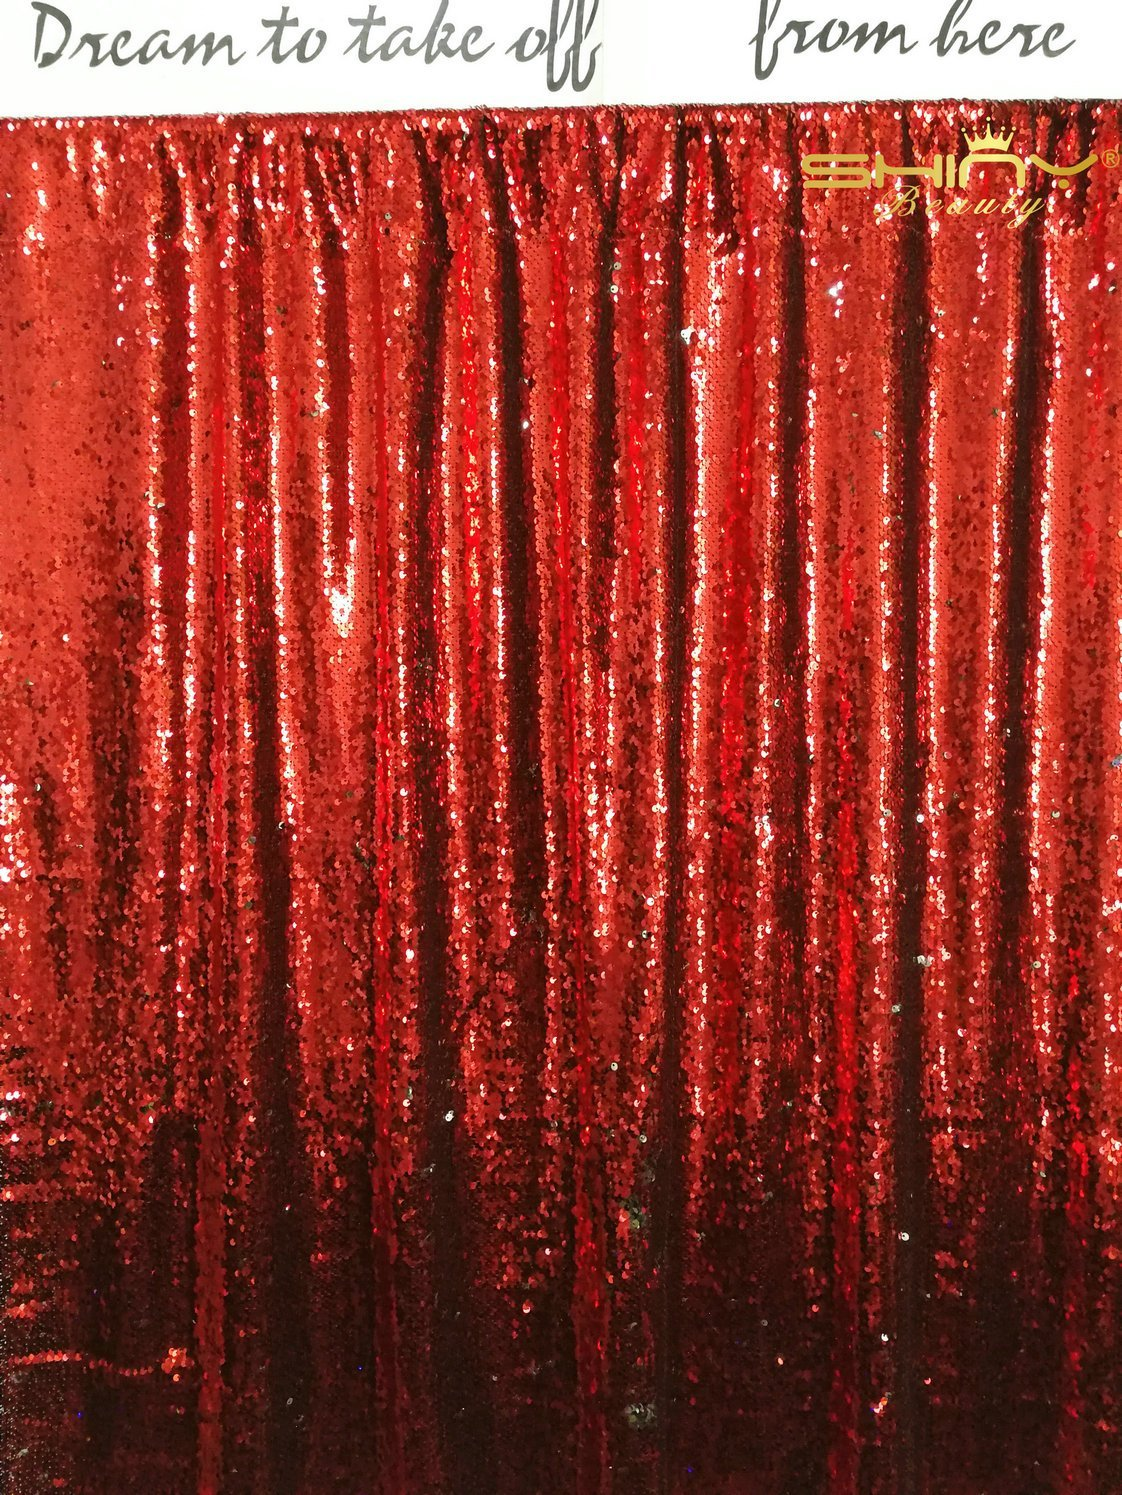 ShinyBeauty Mermaid-Sequin Backdrop-Red&Silver-2FTX8FT,Reversible Sequin Photo Booth Backdrop,Unique/Shimmer Party(Silver #21)